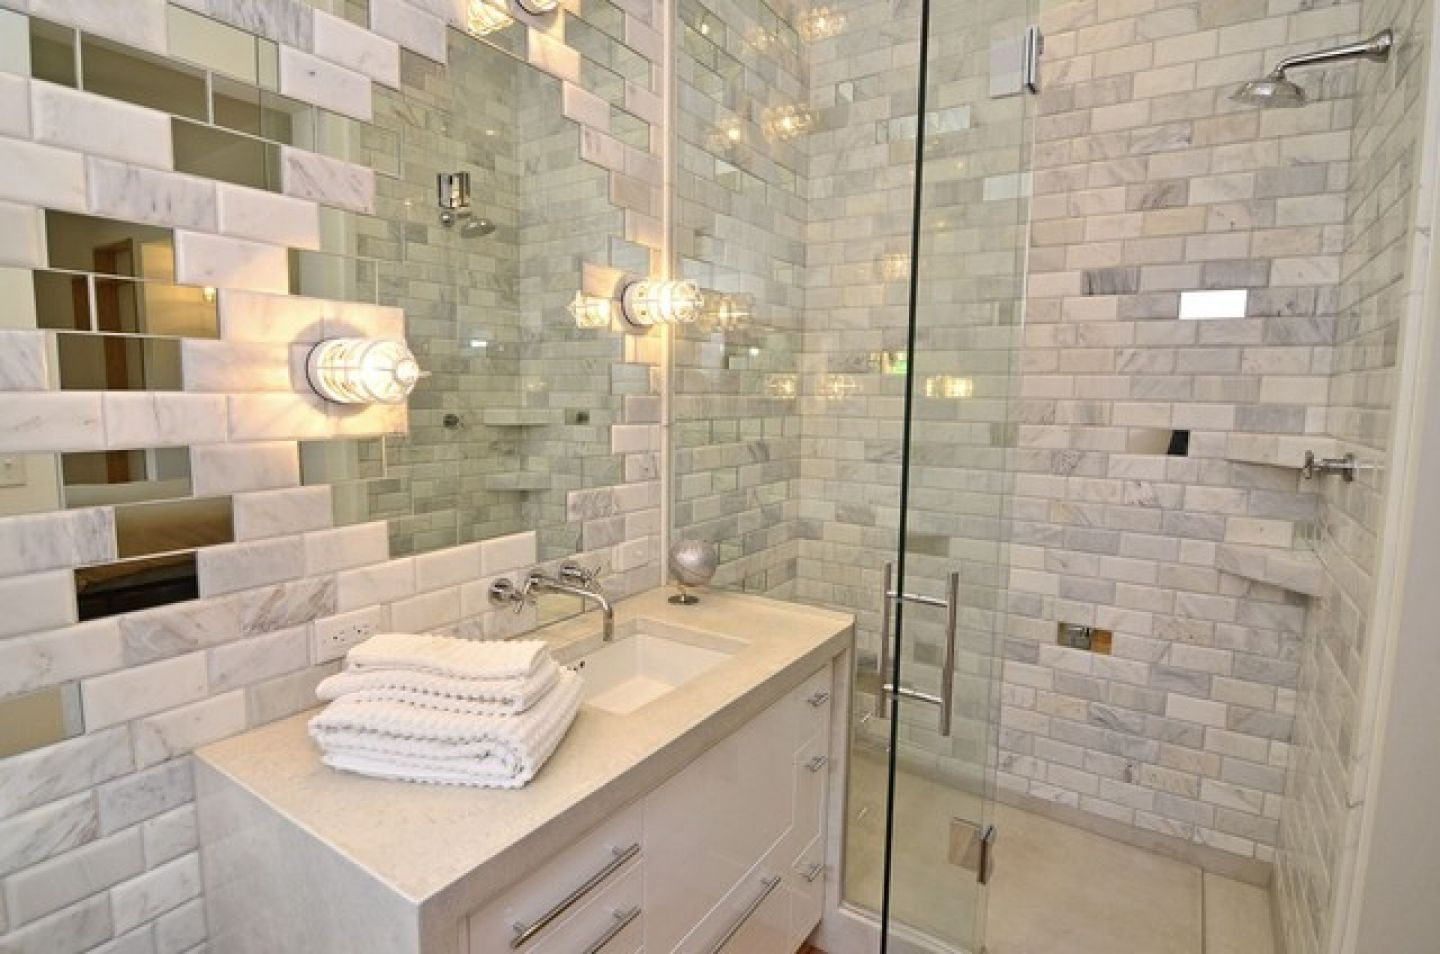 images about hayley bathroom on pinterest ceramic tile bathrooms shower tiles and small bathroom tiles. Bathroom Tiles Designs    Images About Hayley Bathroom On